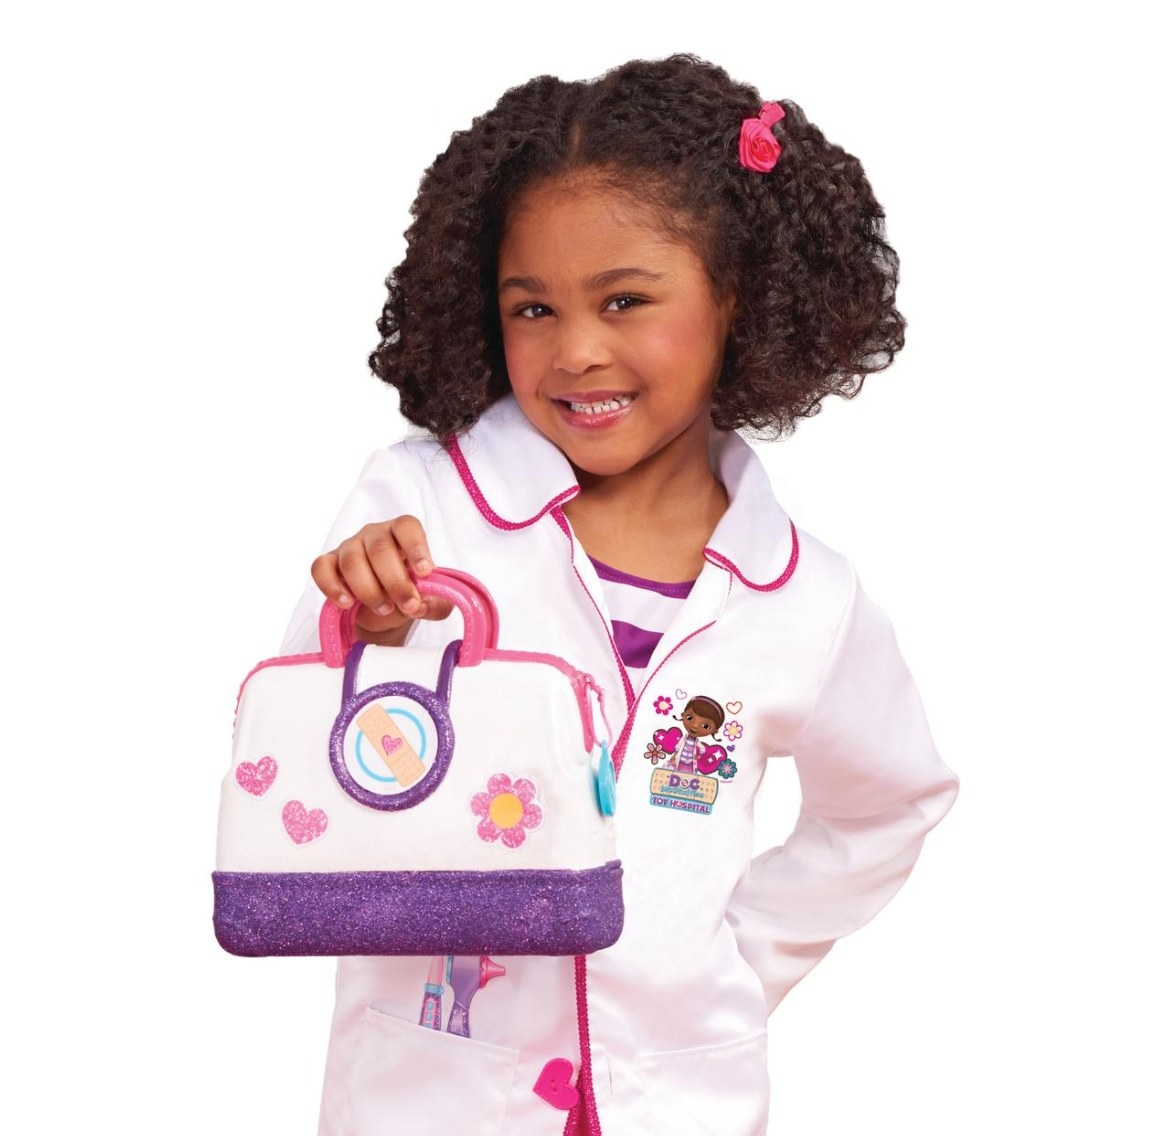 The play hospital bag with a stethoscope, thermometer, and syringe with lights